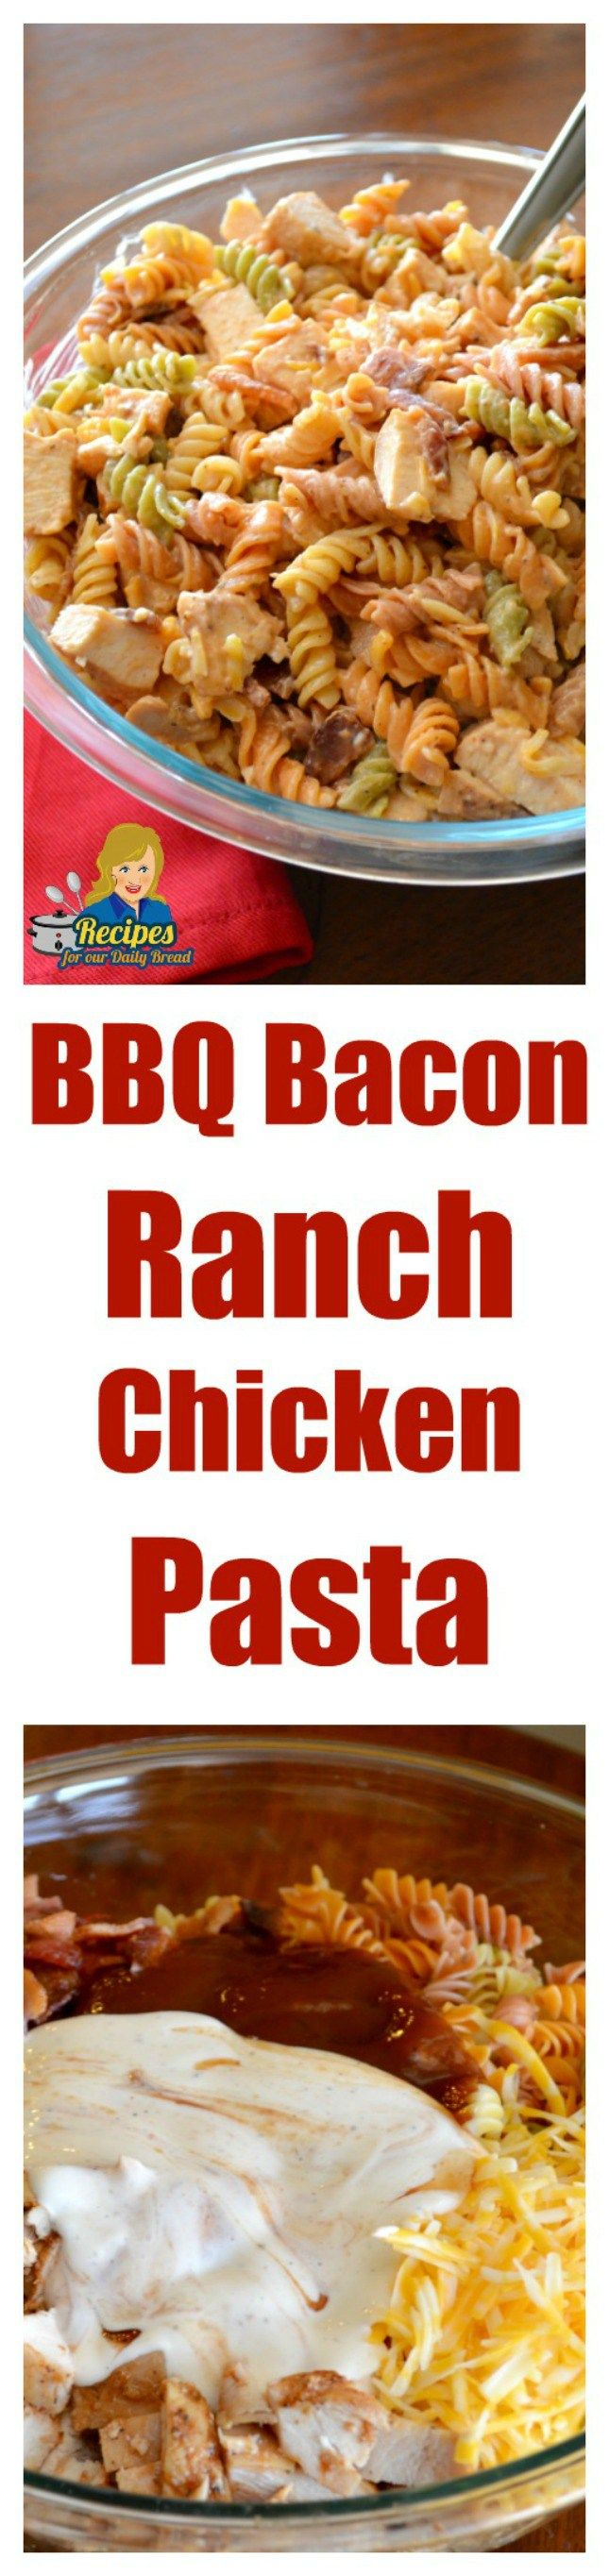 This BBQ Bacon Ranch Chicken Pasta includes, chicken, bacon, barbecue sauce, cheese, ranch dressing, tomatoes, and pasta which go great together.  It is definitely a family favorite easy meal.